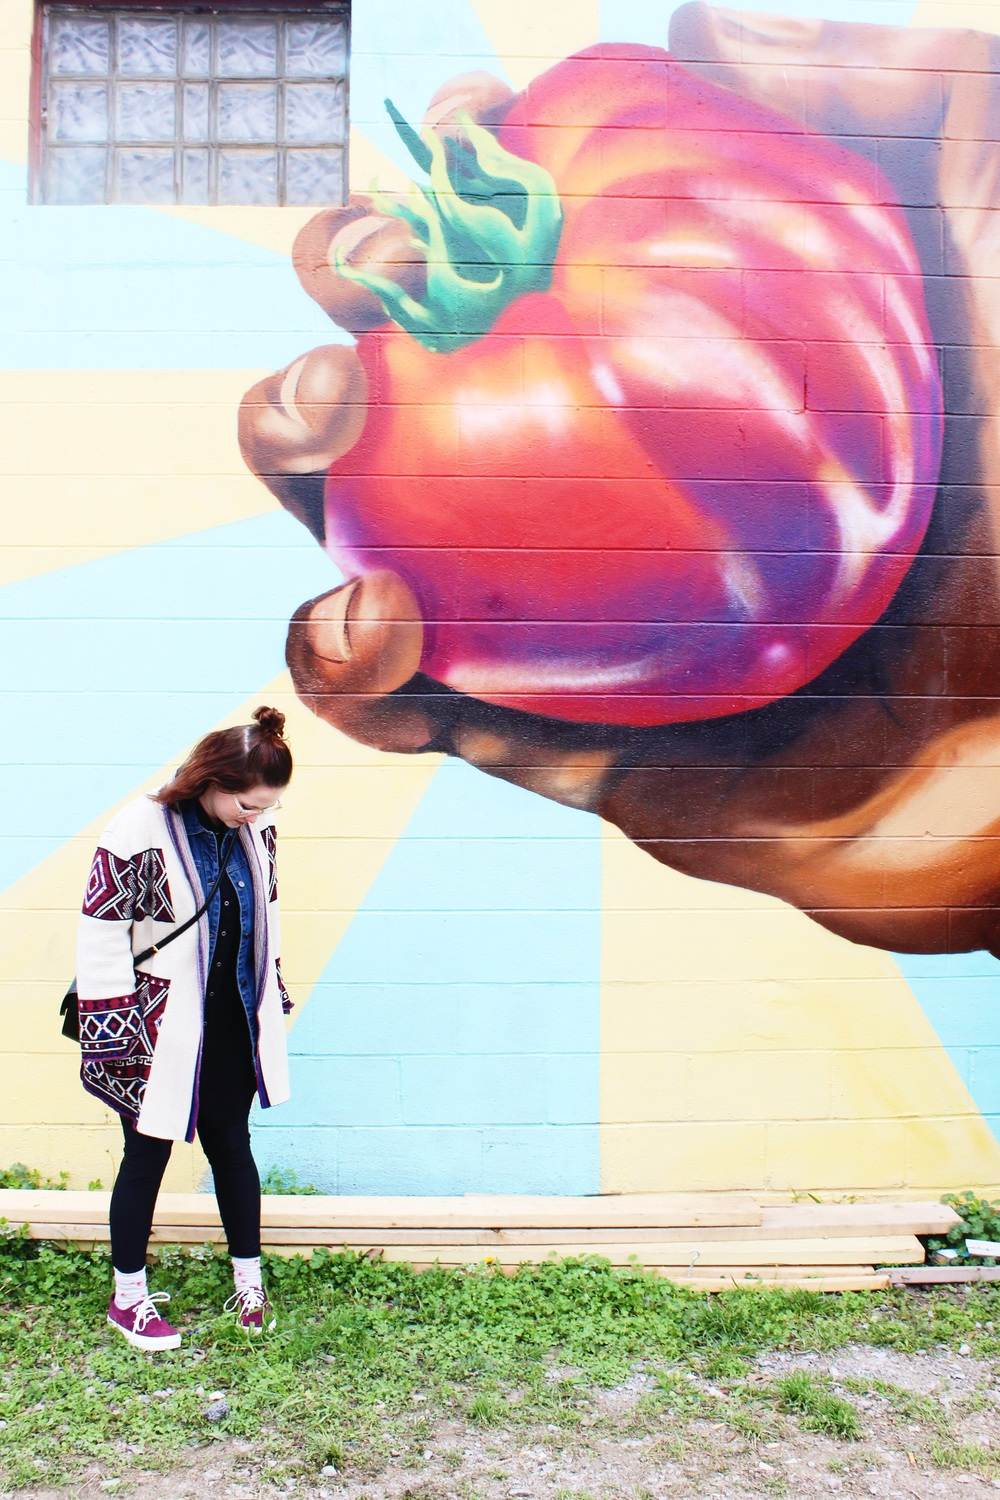 Whitney in front of a nearby mural.